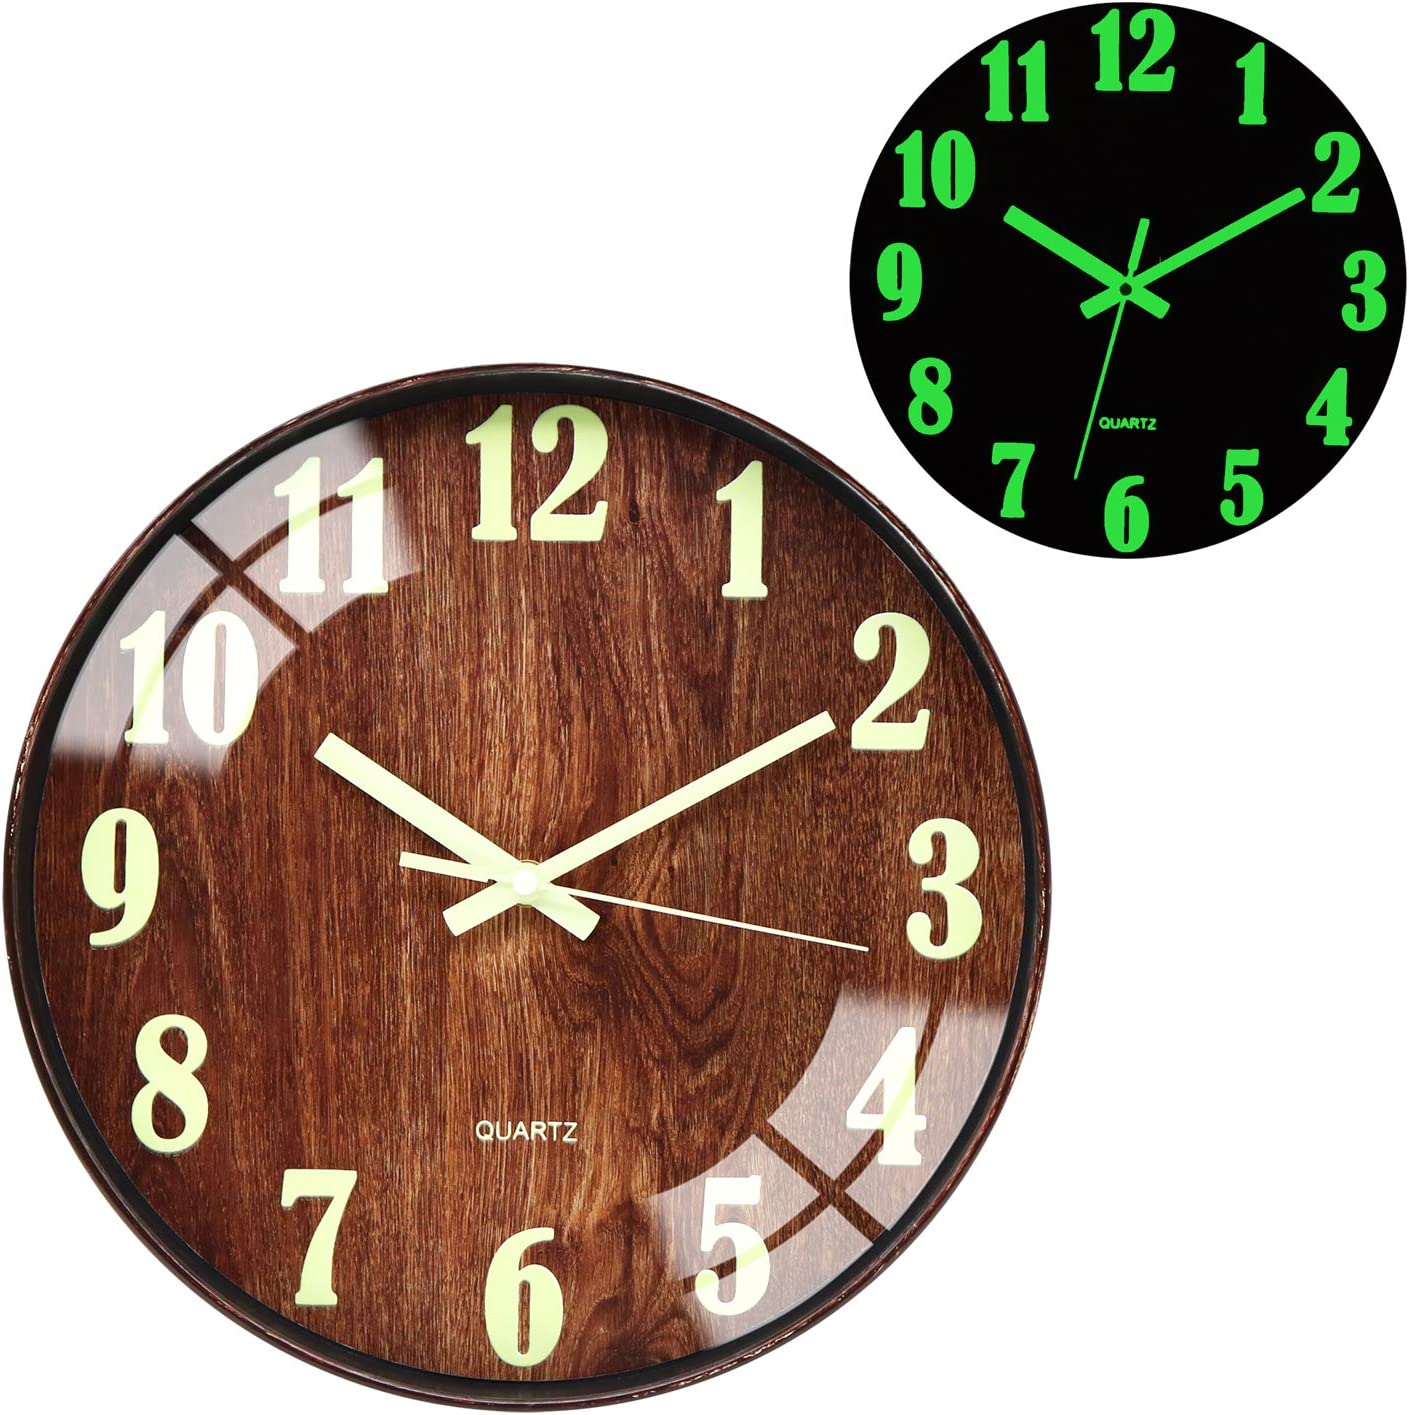 Wall Clocks Night Light Function Wood Grain 12 Inch Non Ticking Silent Quartz Battery Operated Round Easy to Read